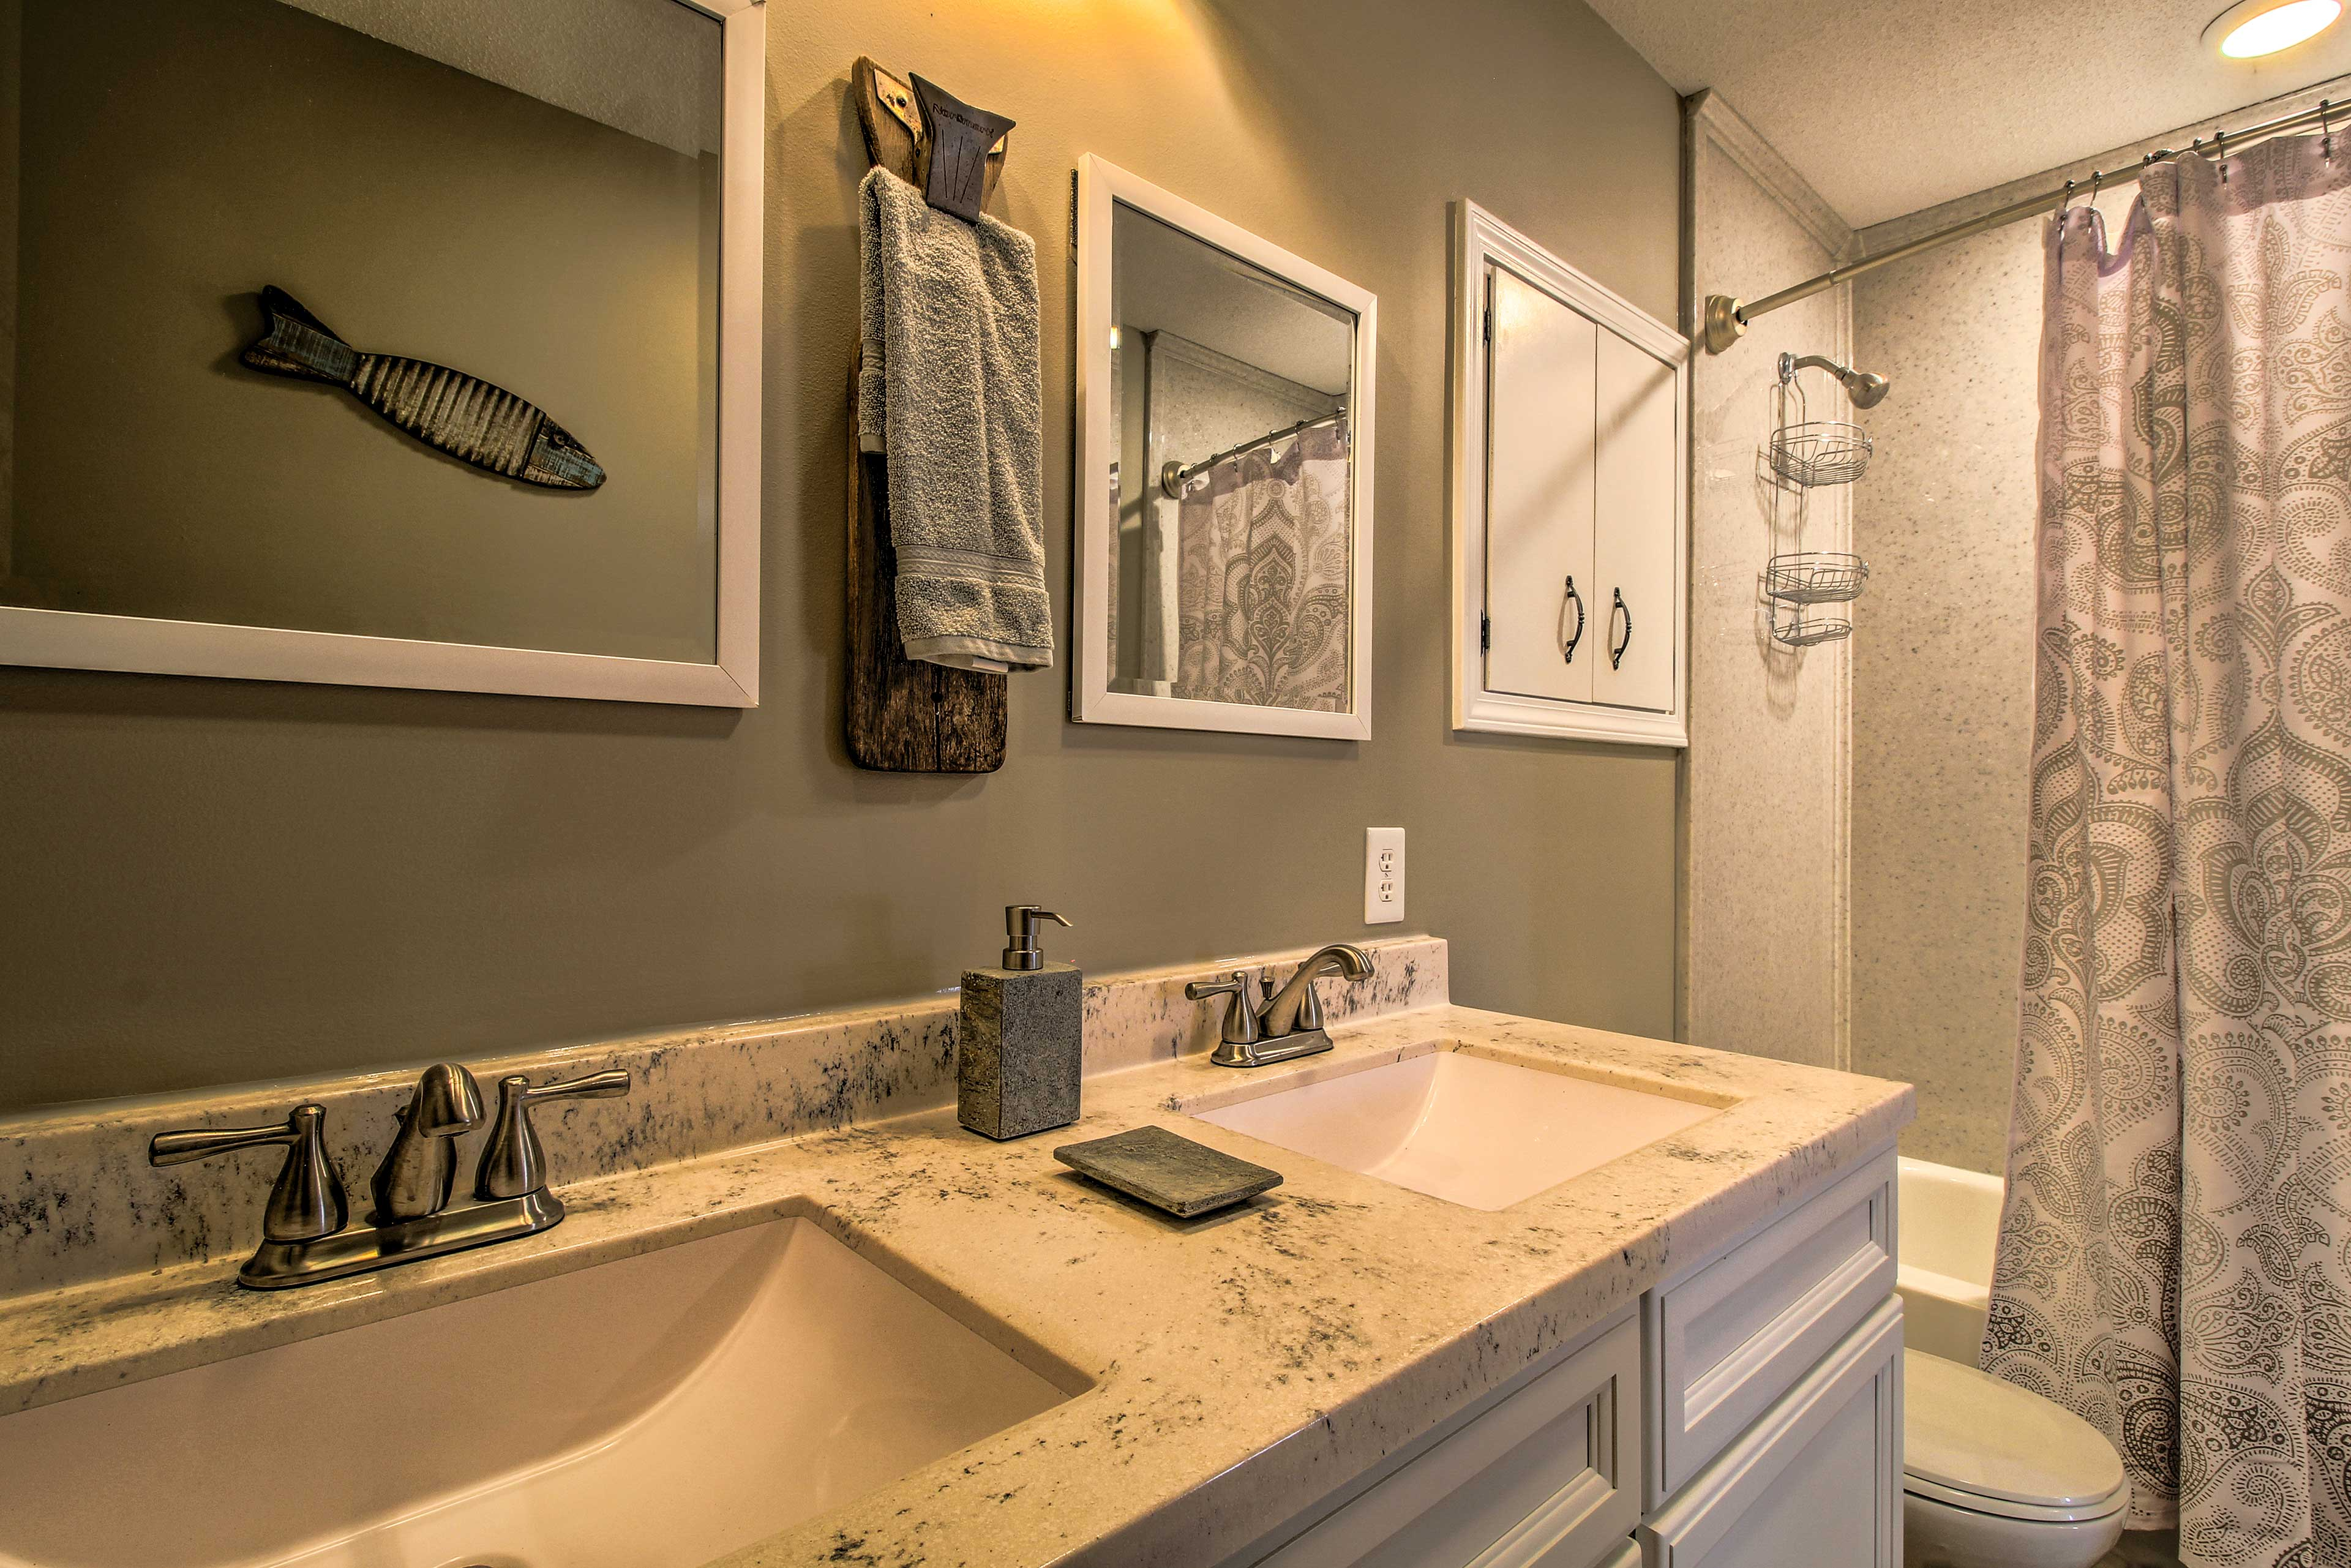 Double vanities and a shower/tub combo complete the master bathroom.